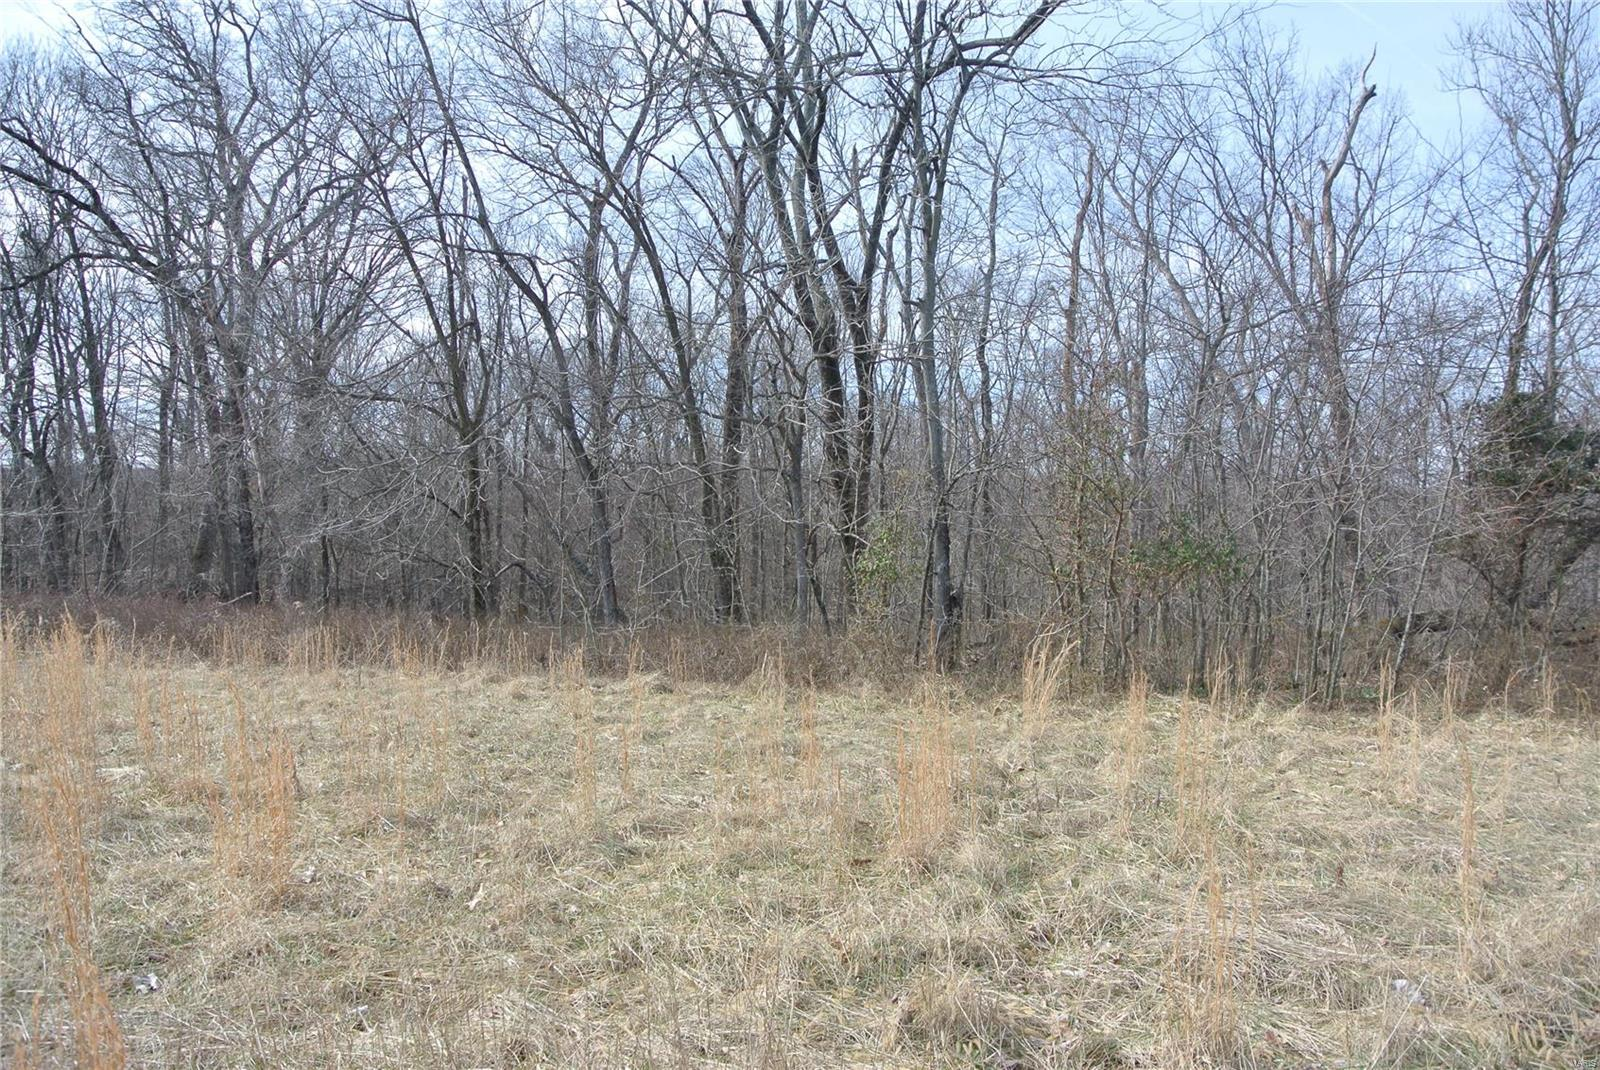 0 lot 29A Tyler Branch Road Property Photo 1